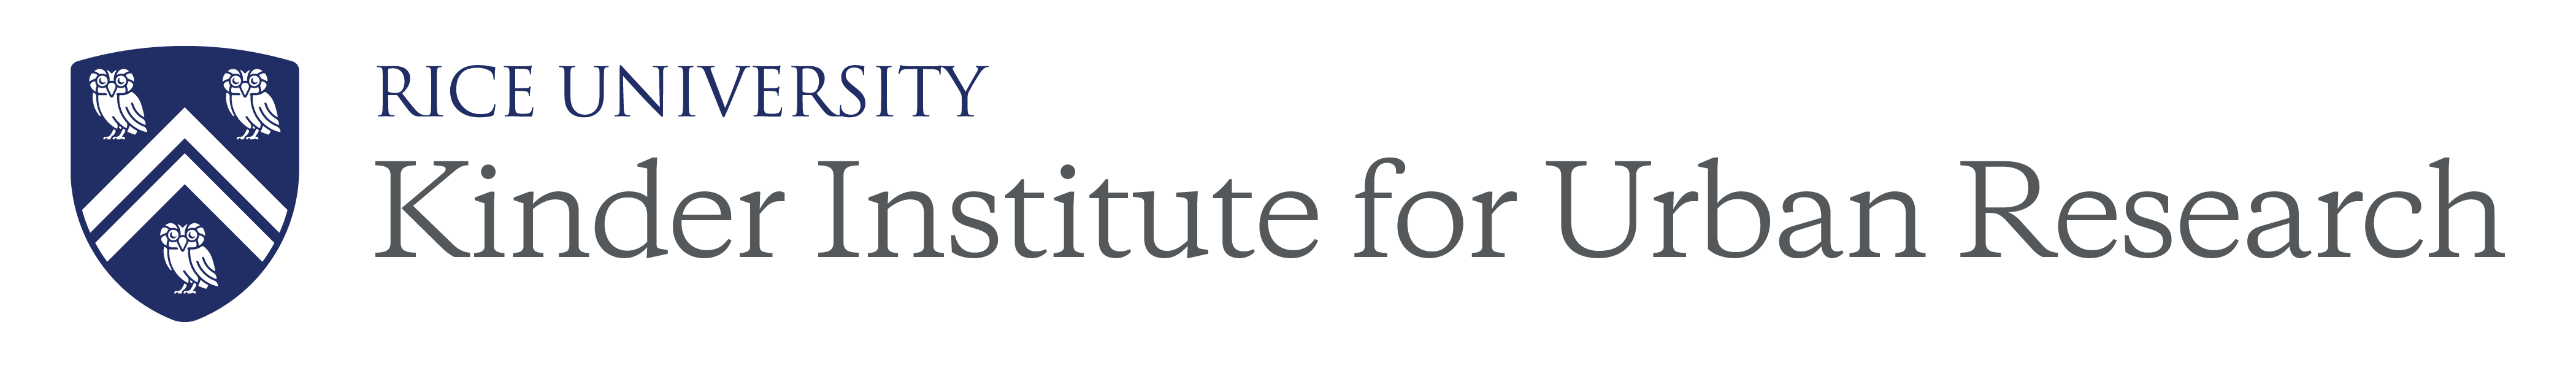 Kinder Institute for Urban Research logo